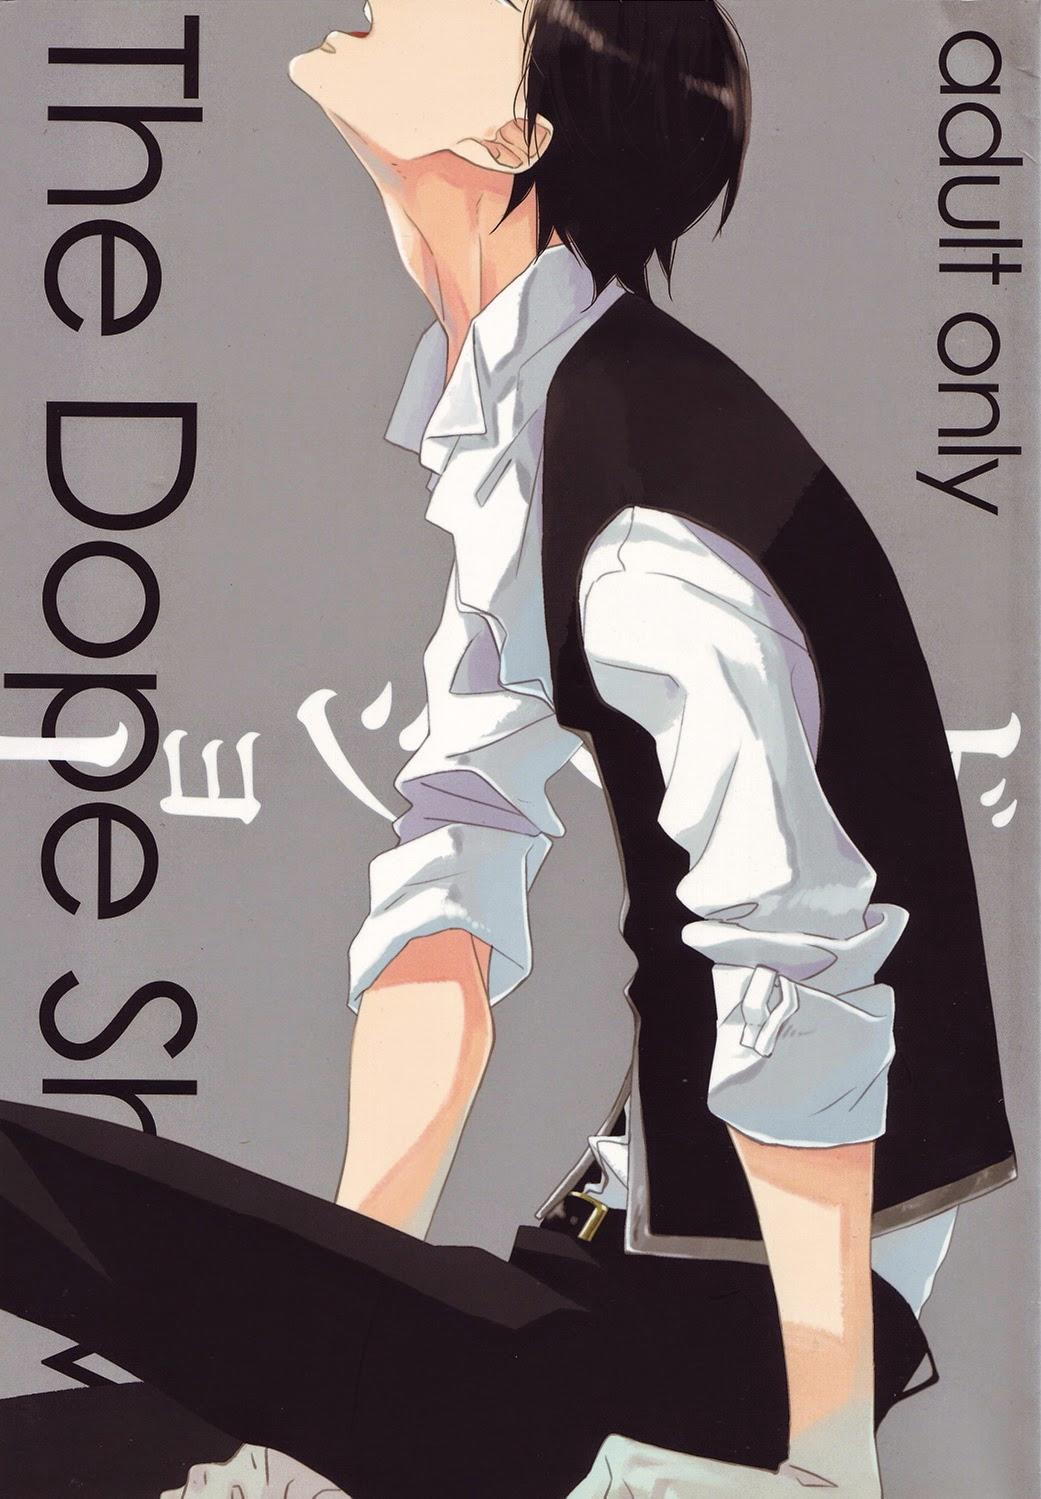 b_0cover